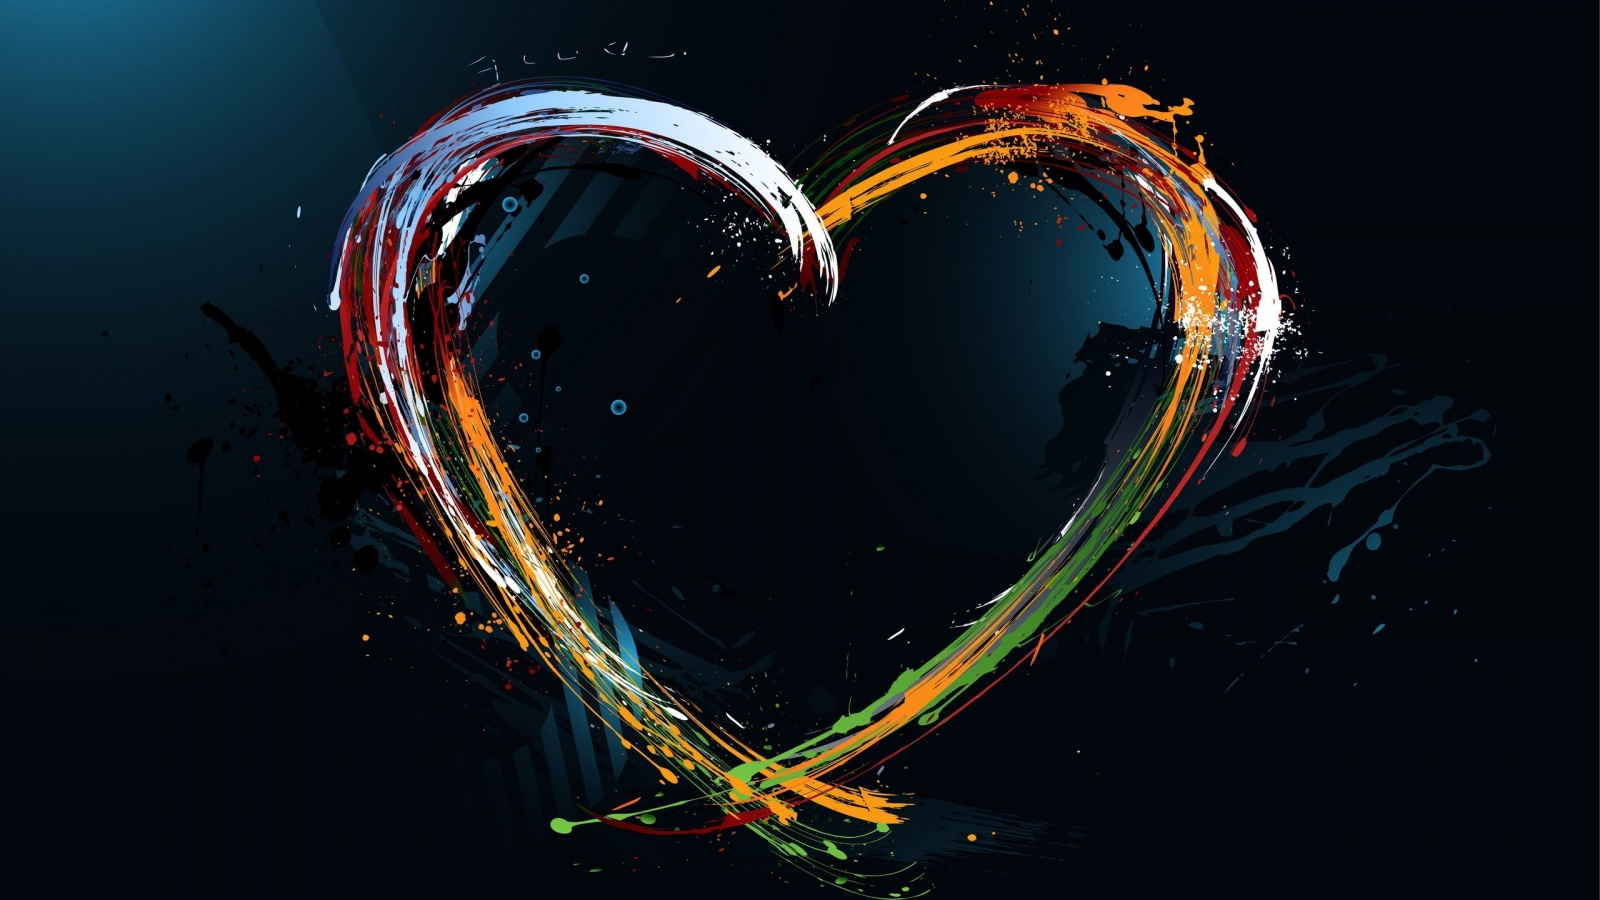 Love Abstract Design 4148404 2560x1600 All For Desktop